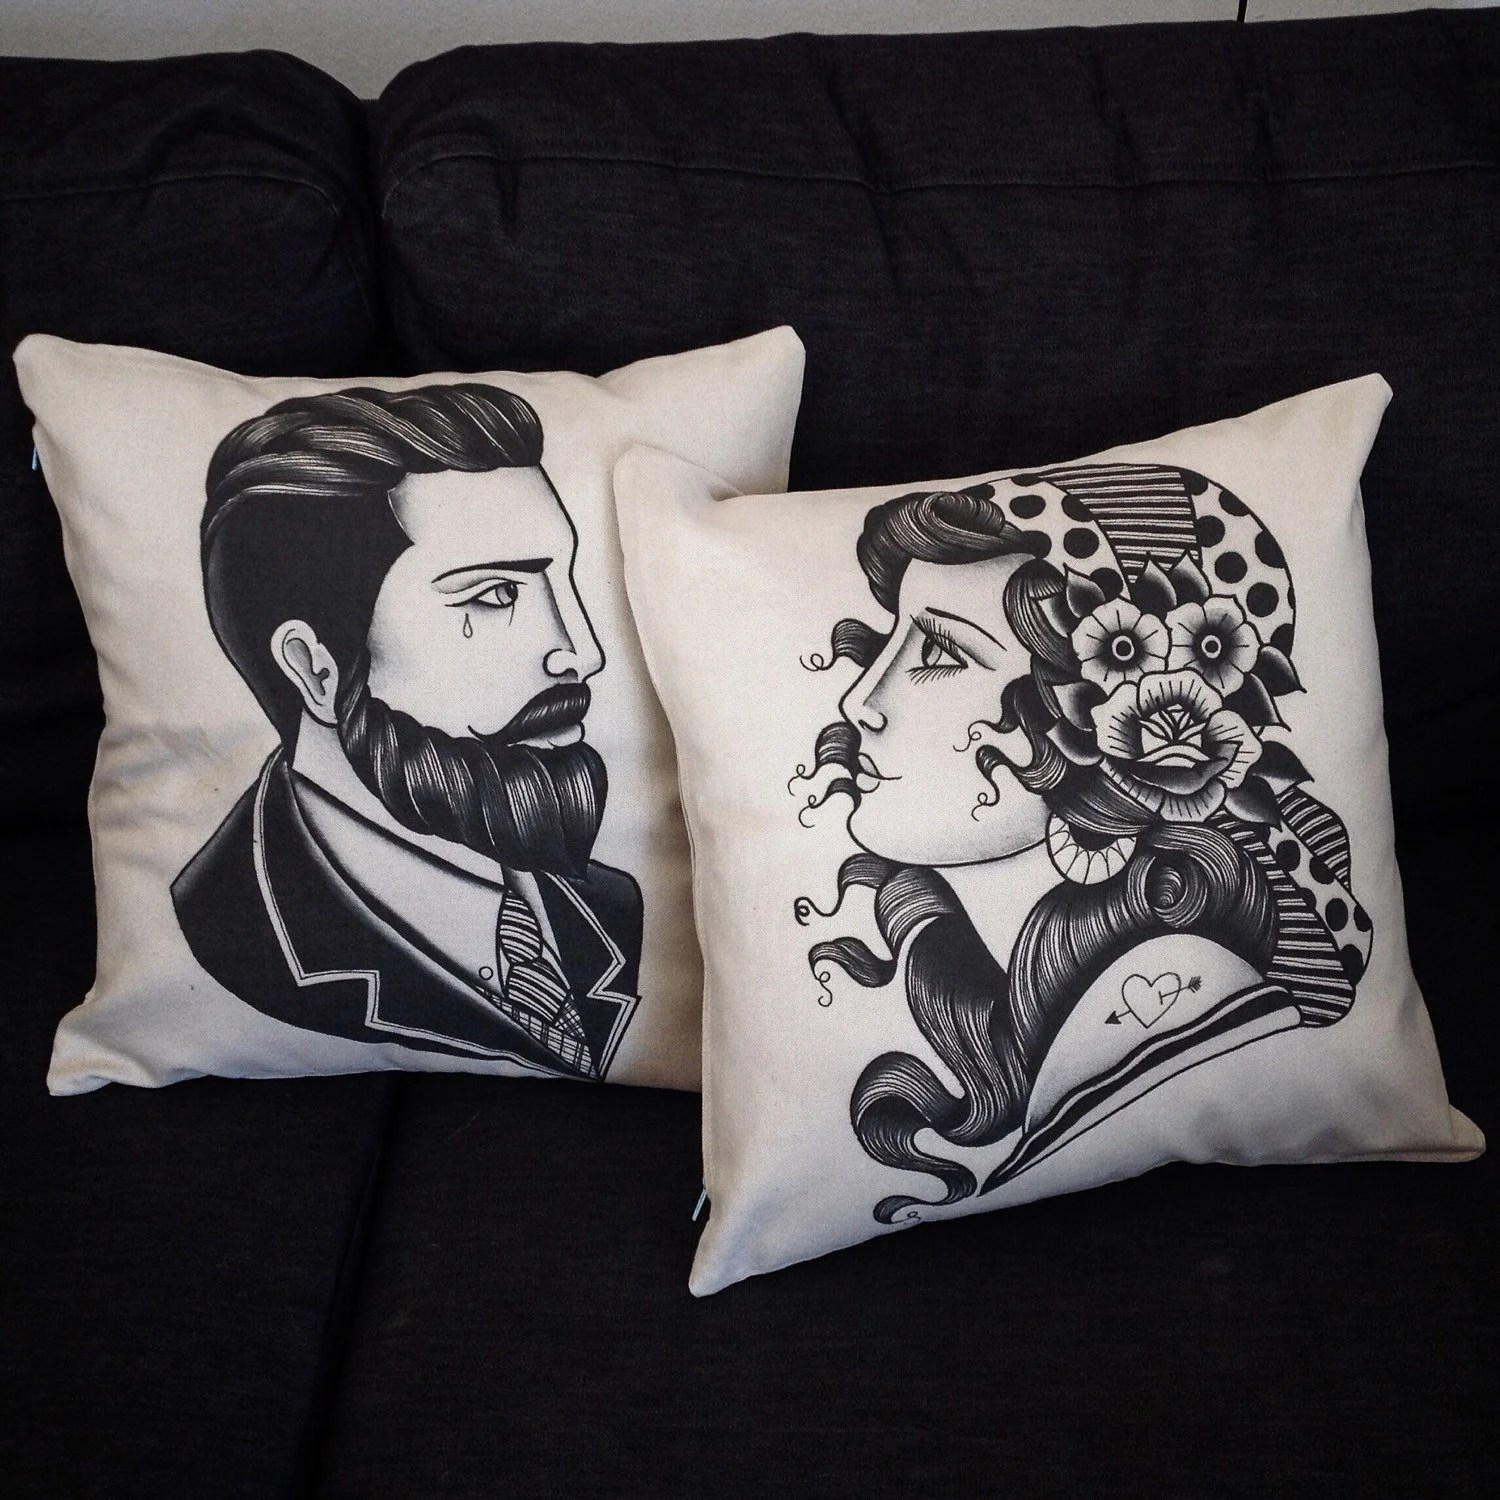 Couples Cushion Cover Set With Tattoo Print Mr And Mrs Ideas And Designs